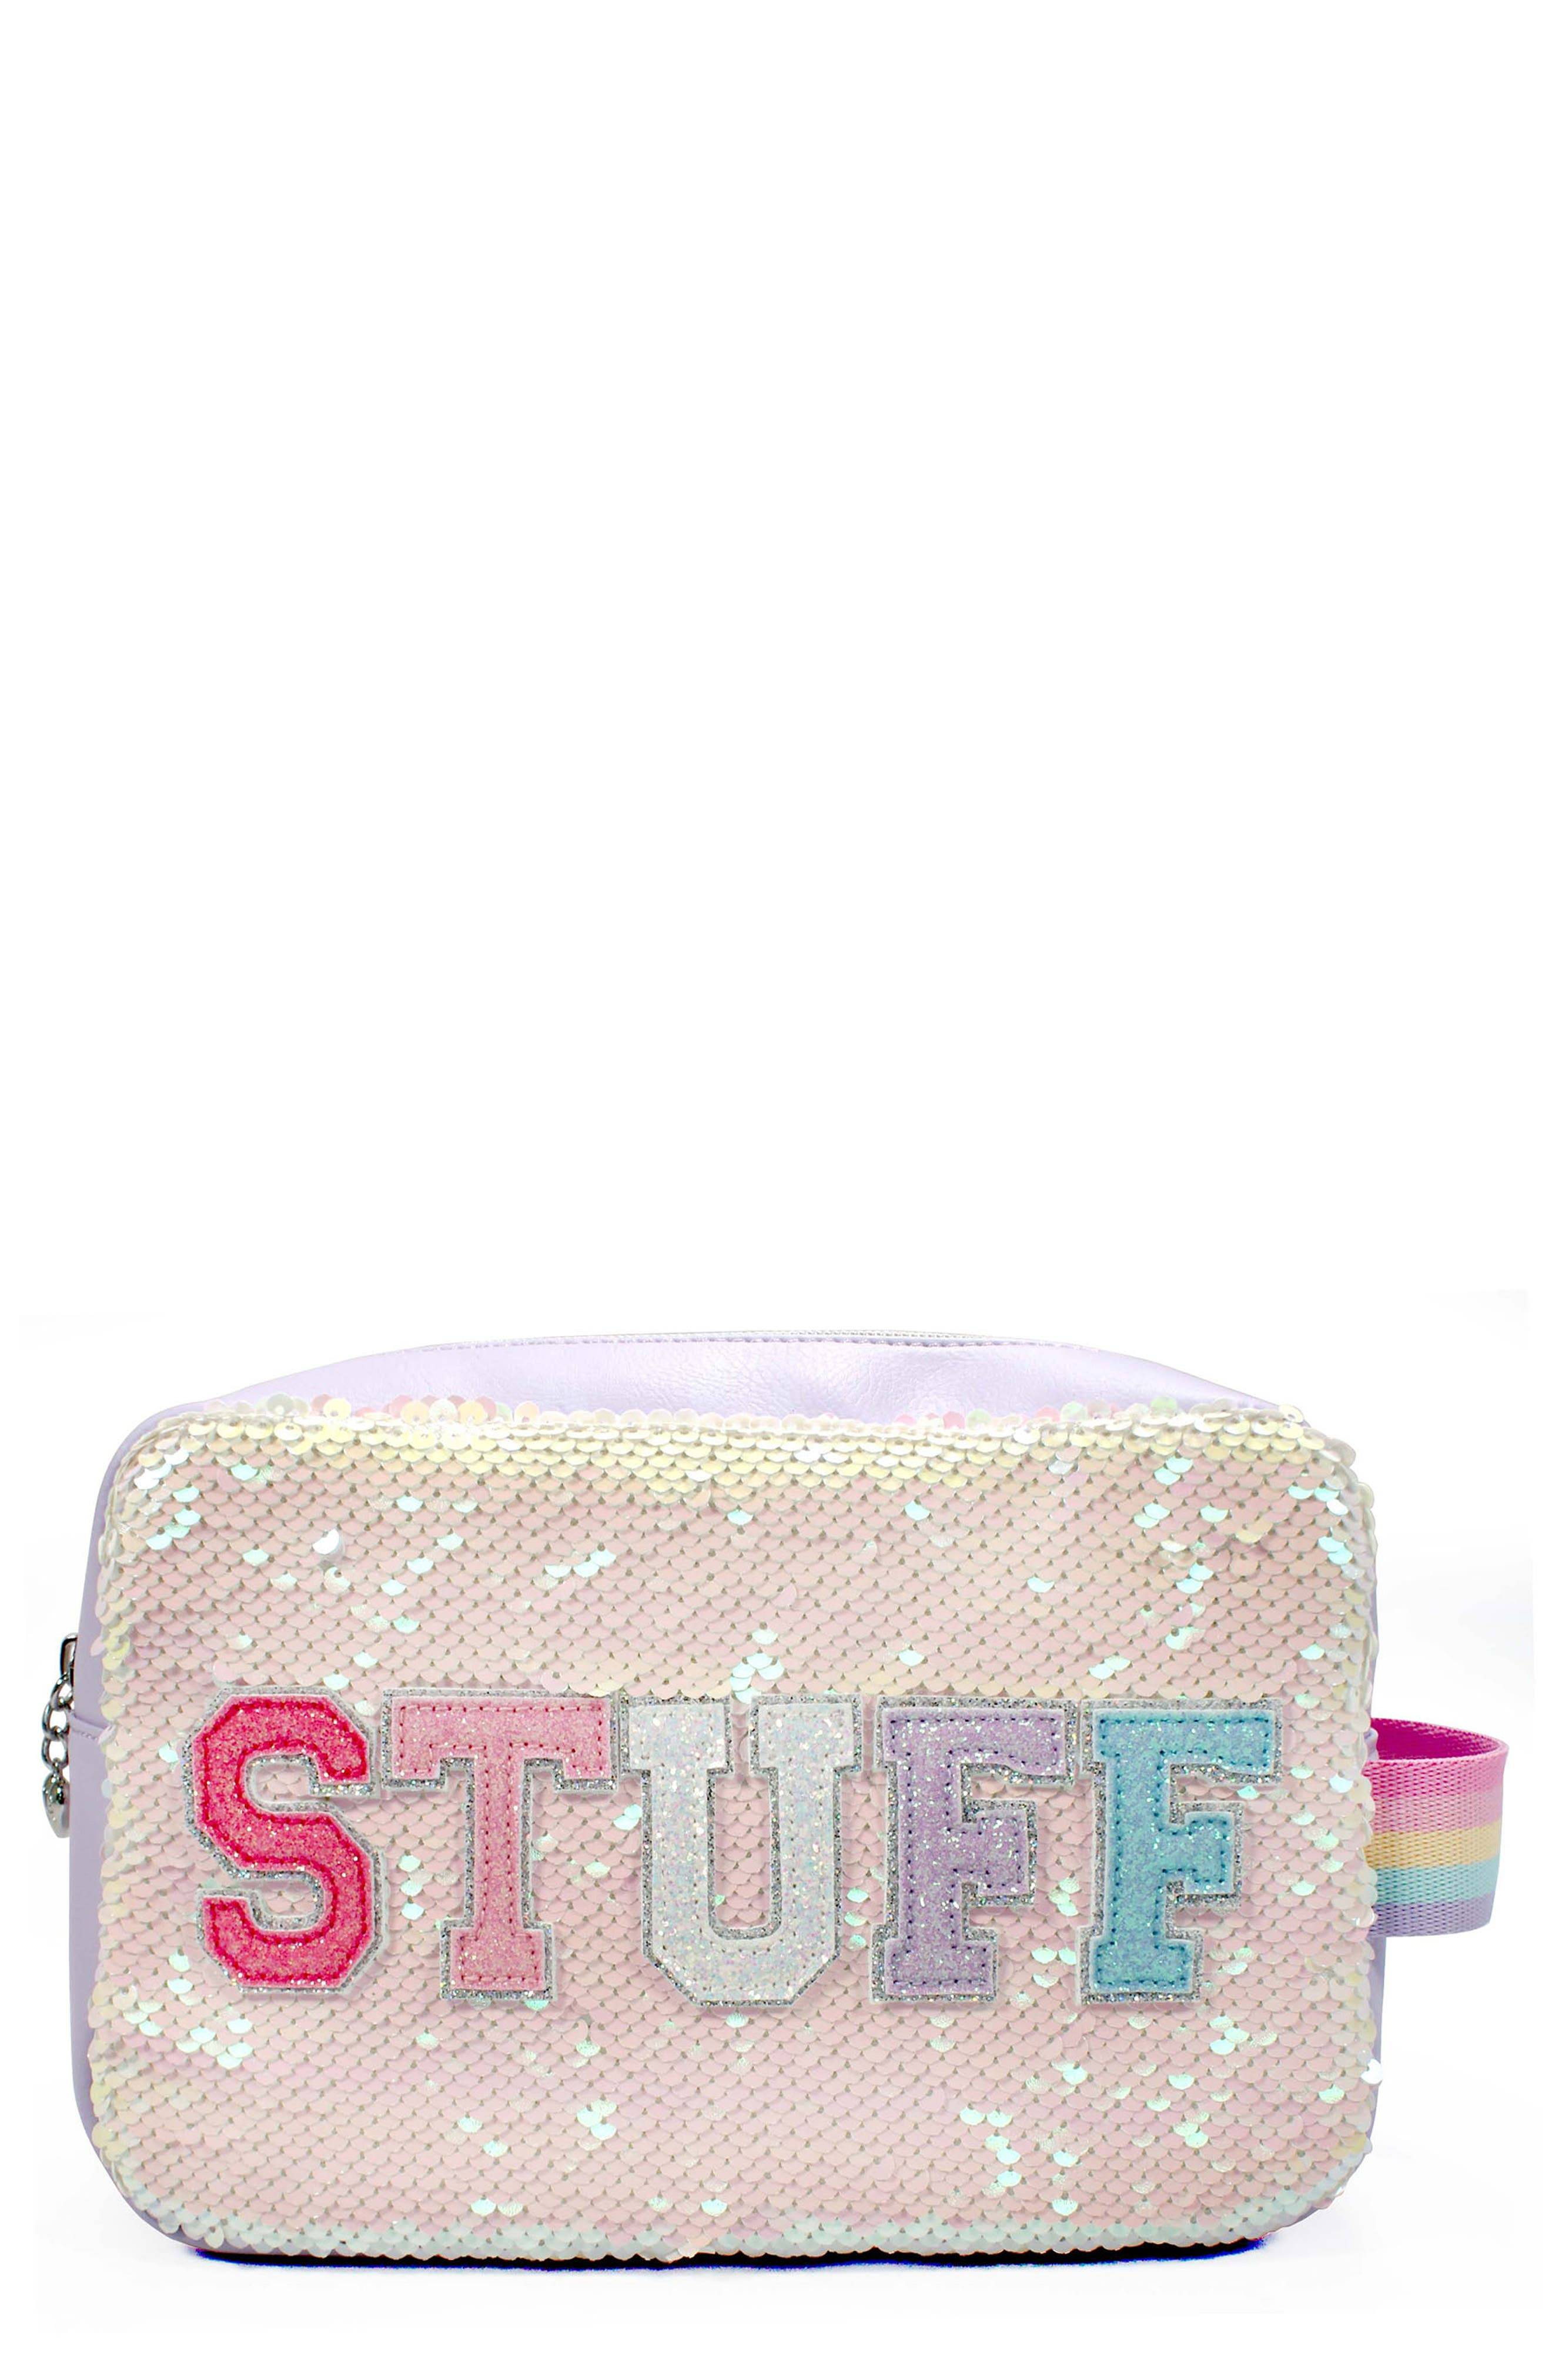 OMG Accessories Girl's Omg Stuff Sequin Pouch - Purple